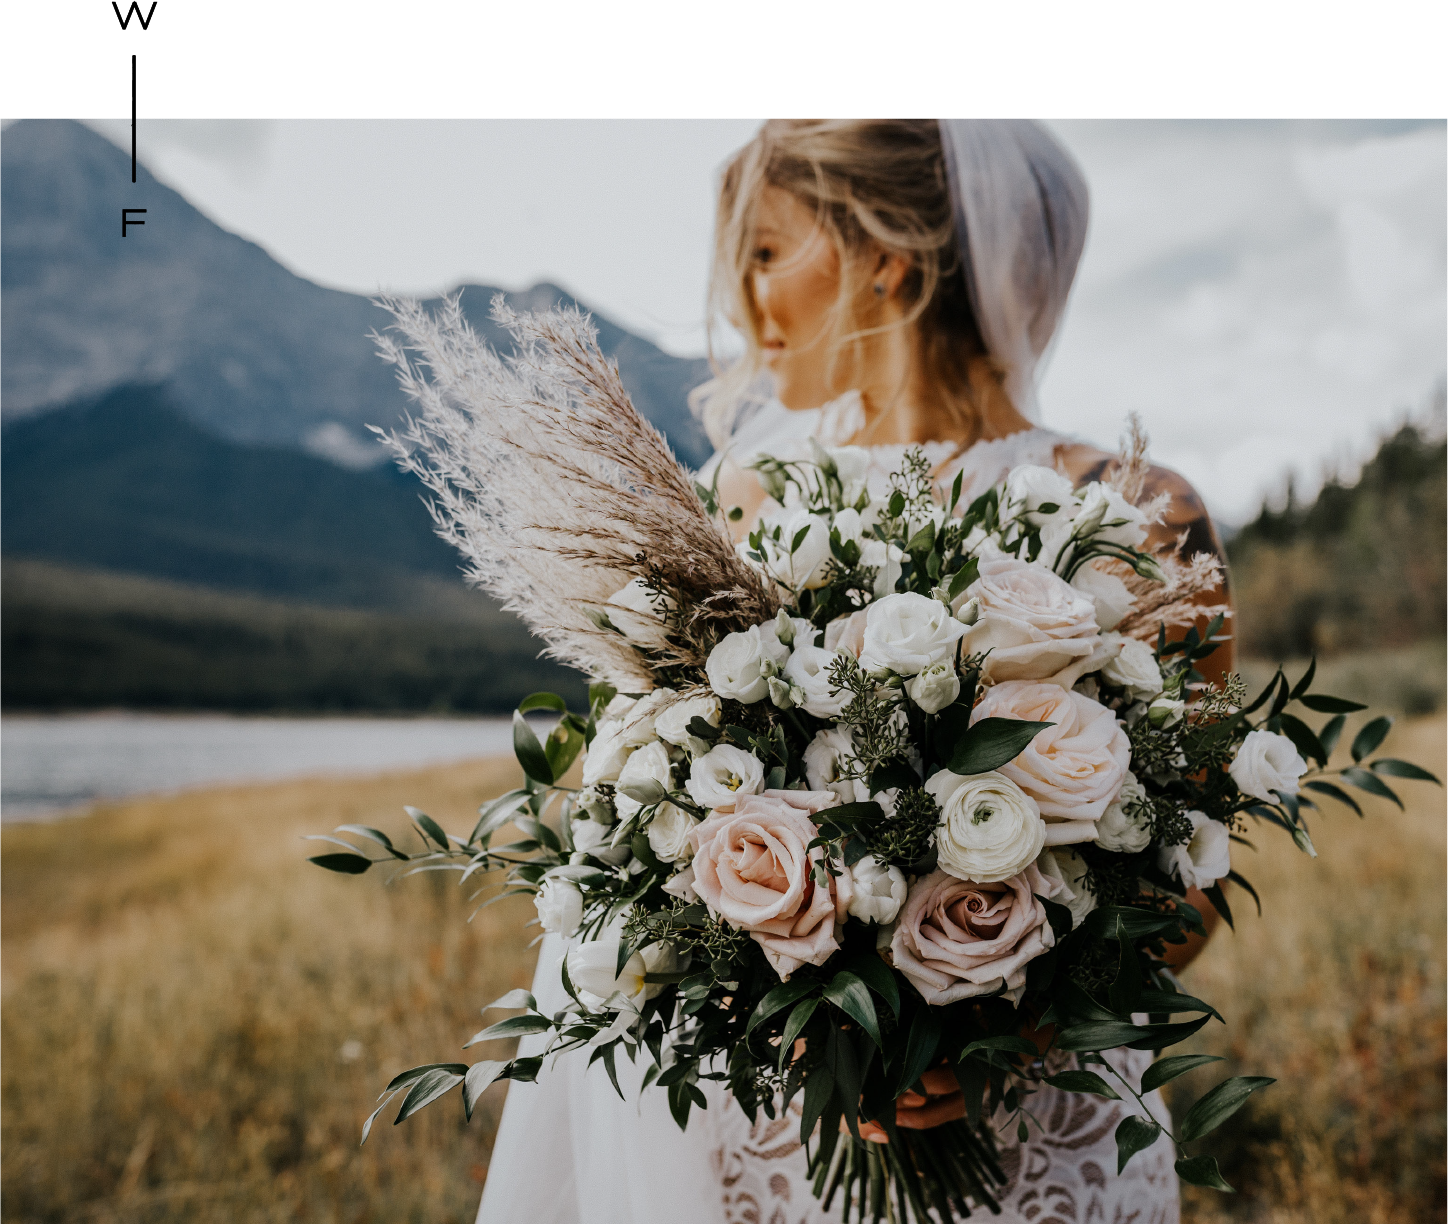 weddings and events - - a boutique Canmore Floral Boutique nestled in the Canadian rocky mountains